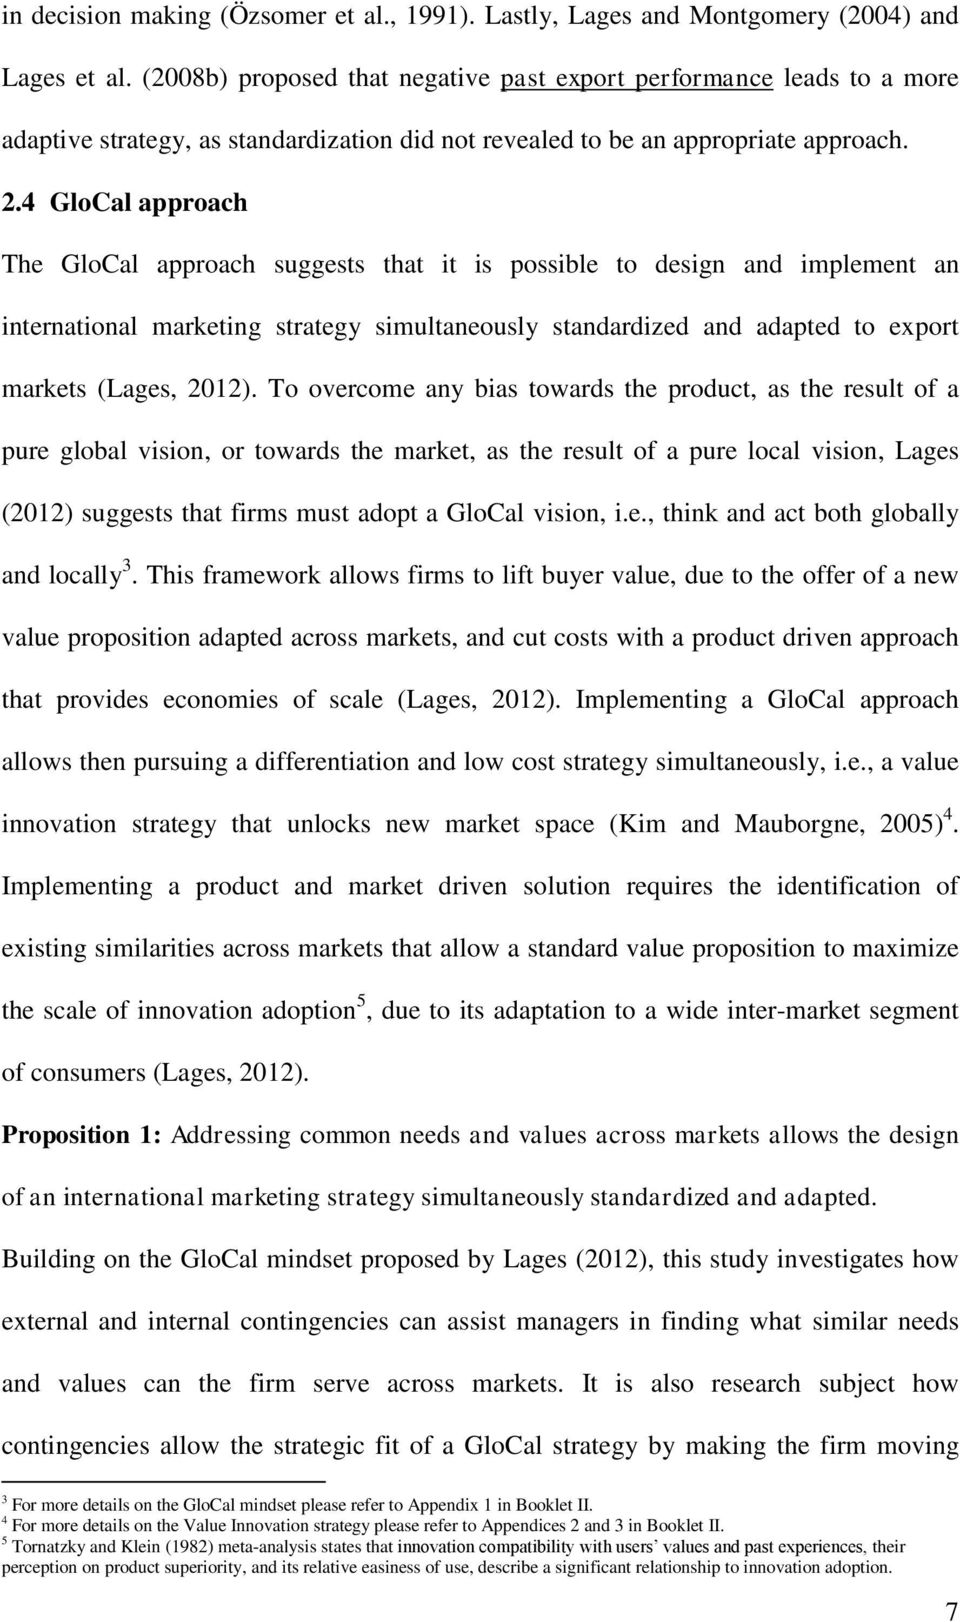 4 GloCal approach The GloCal approach suggests that it is possible to design and implement an international marketing strategy simultaneously standardized and adapted to export markets (Lages, 2012).